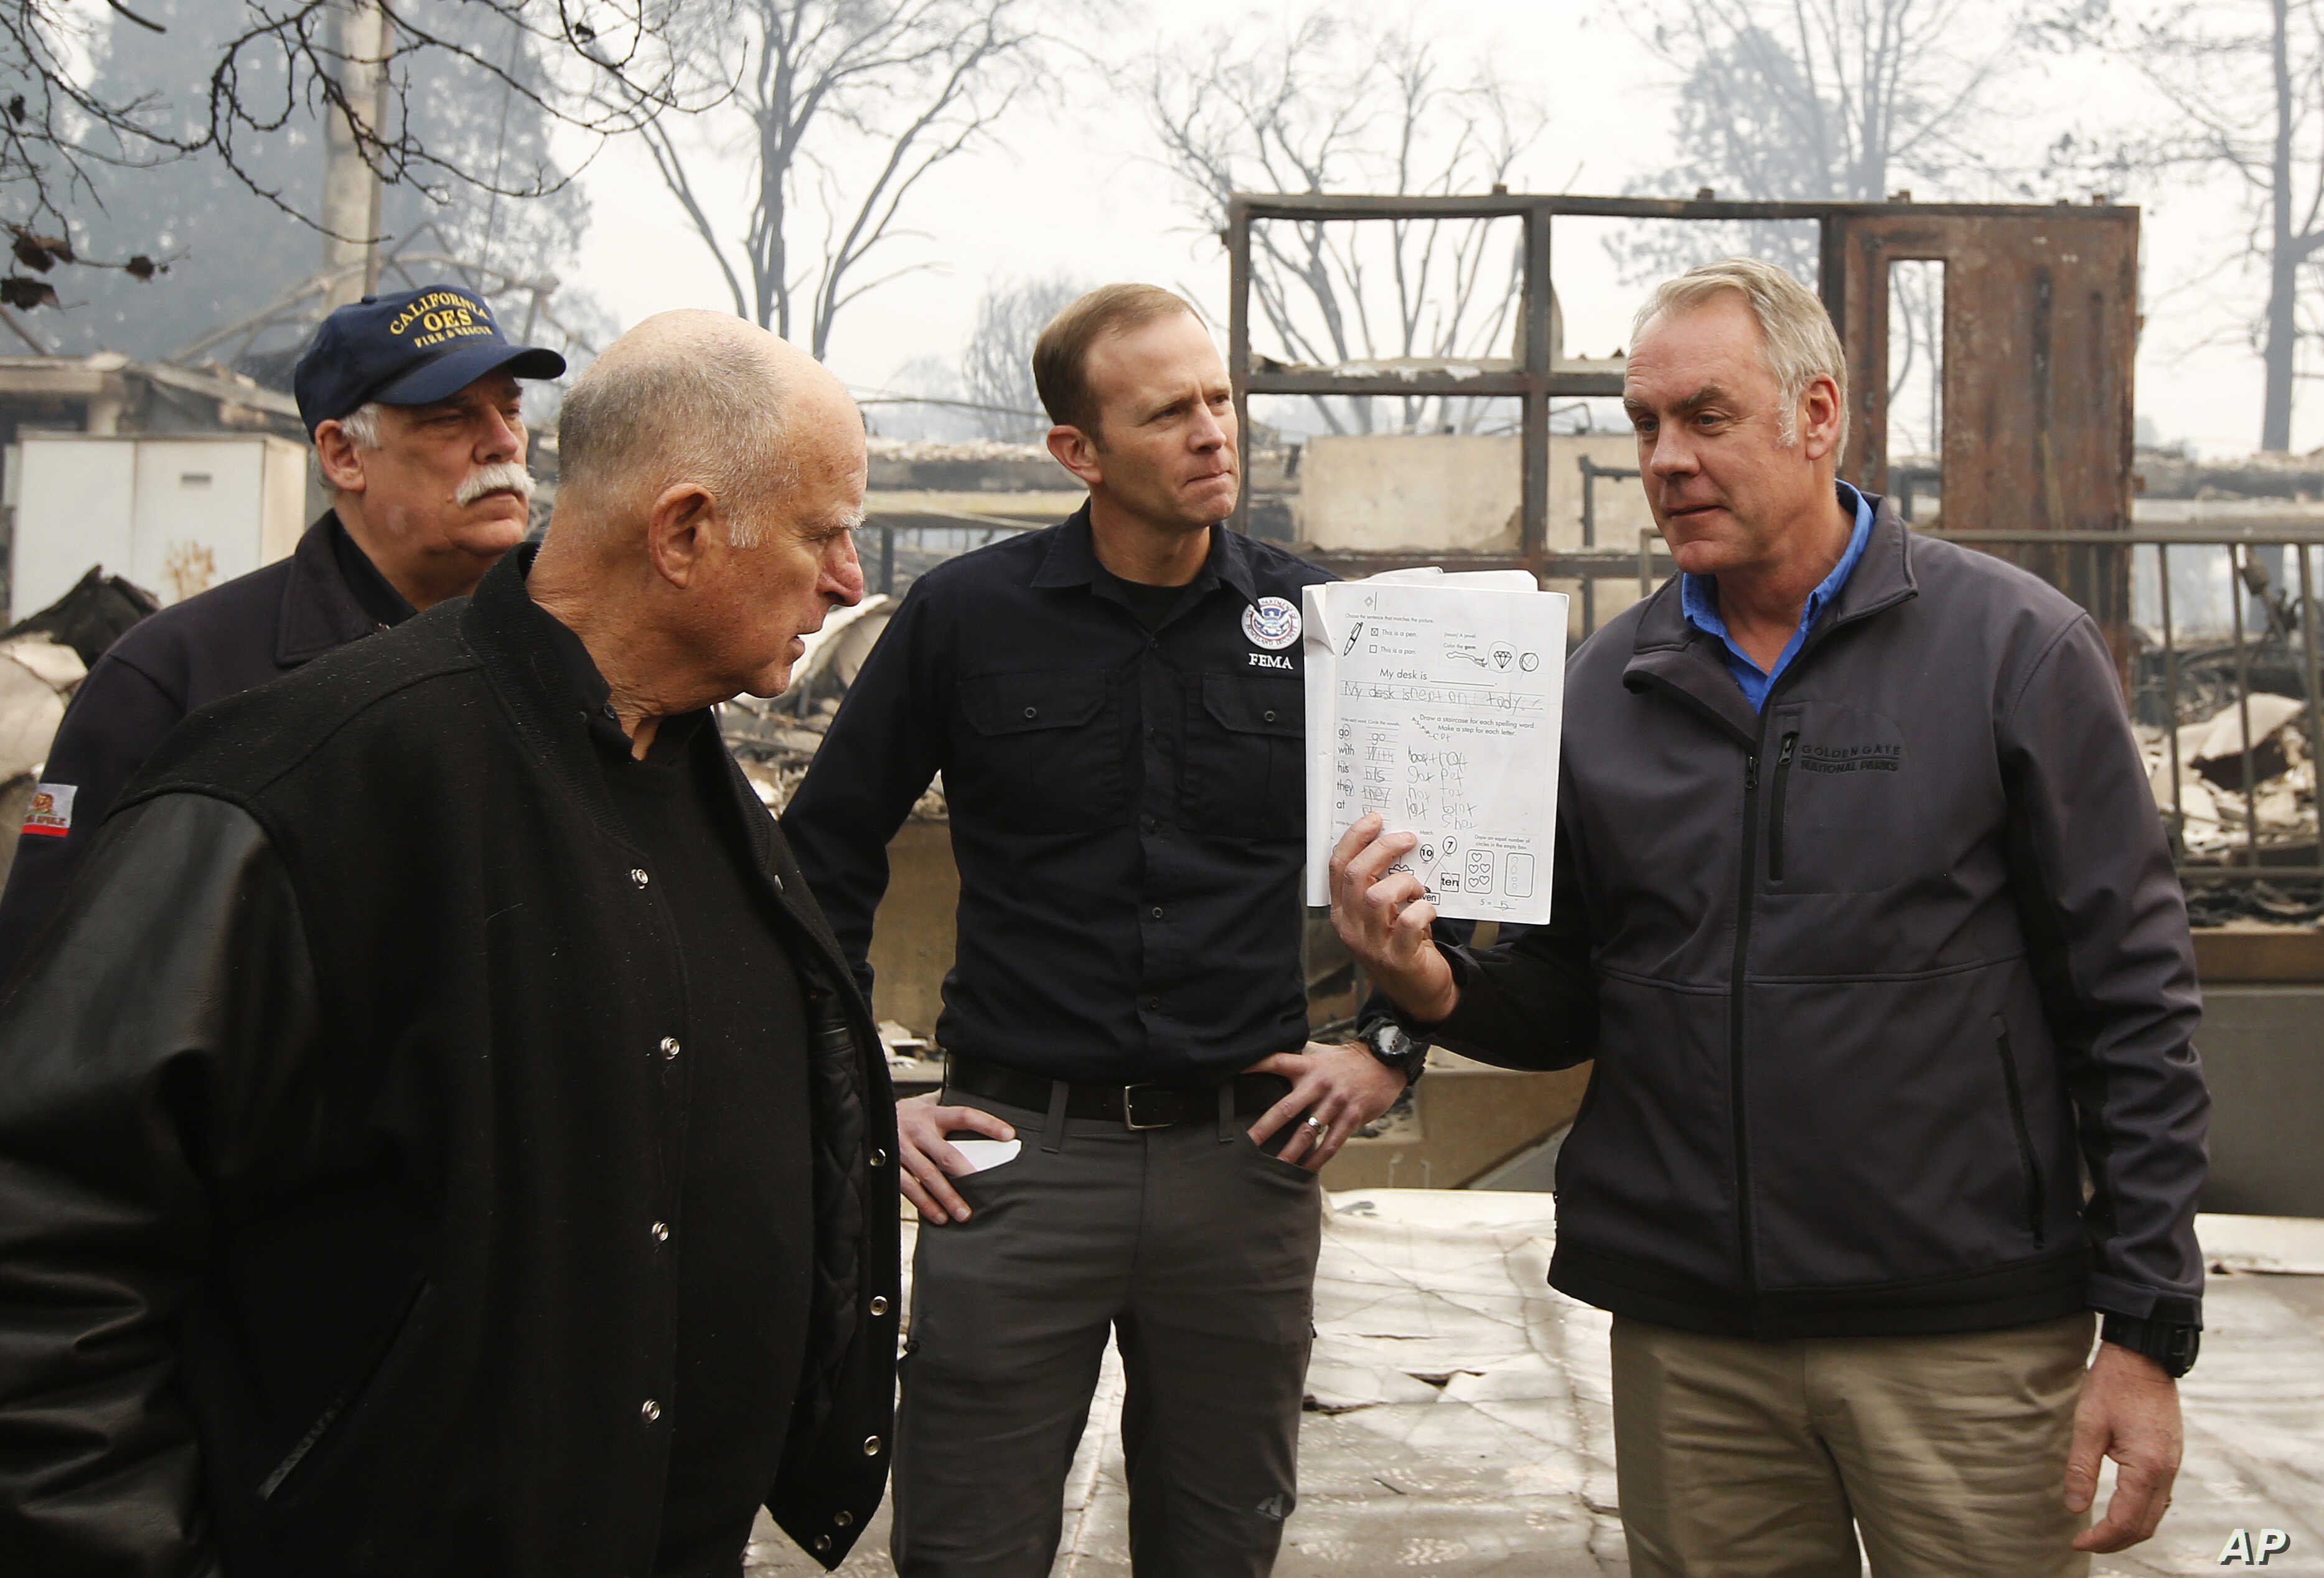 California Gov. Jerry Brown, second from left, looks at a students work book displayed by Interior Secretary Ryan Zinke, that was found during a tour of the fire ravaged Paradise Elementary School, Nov. 14, 2018, in Paradise, Calif. The school is amo...